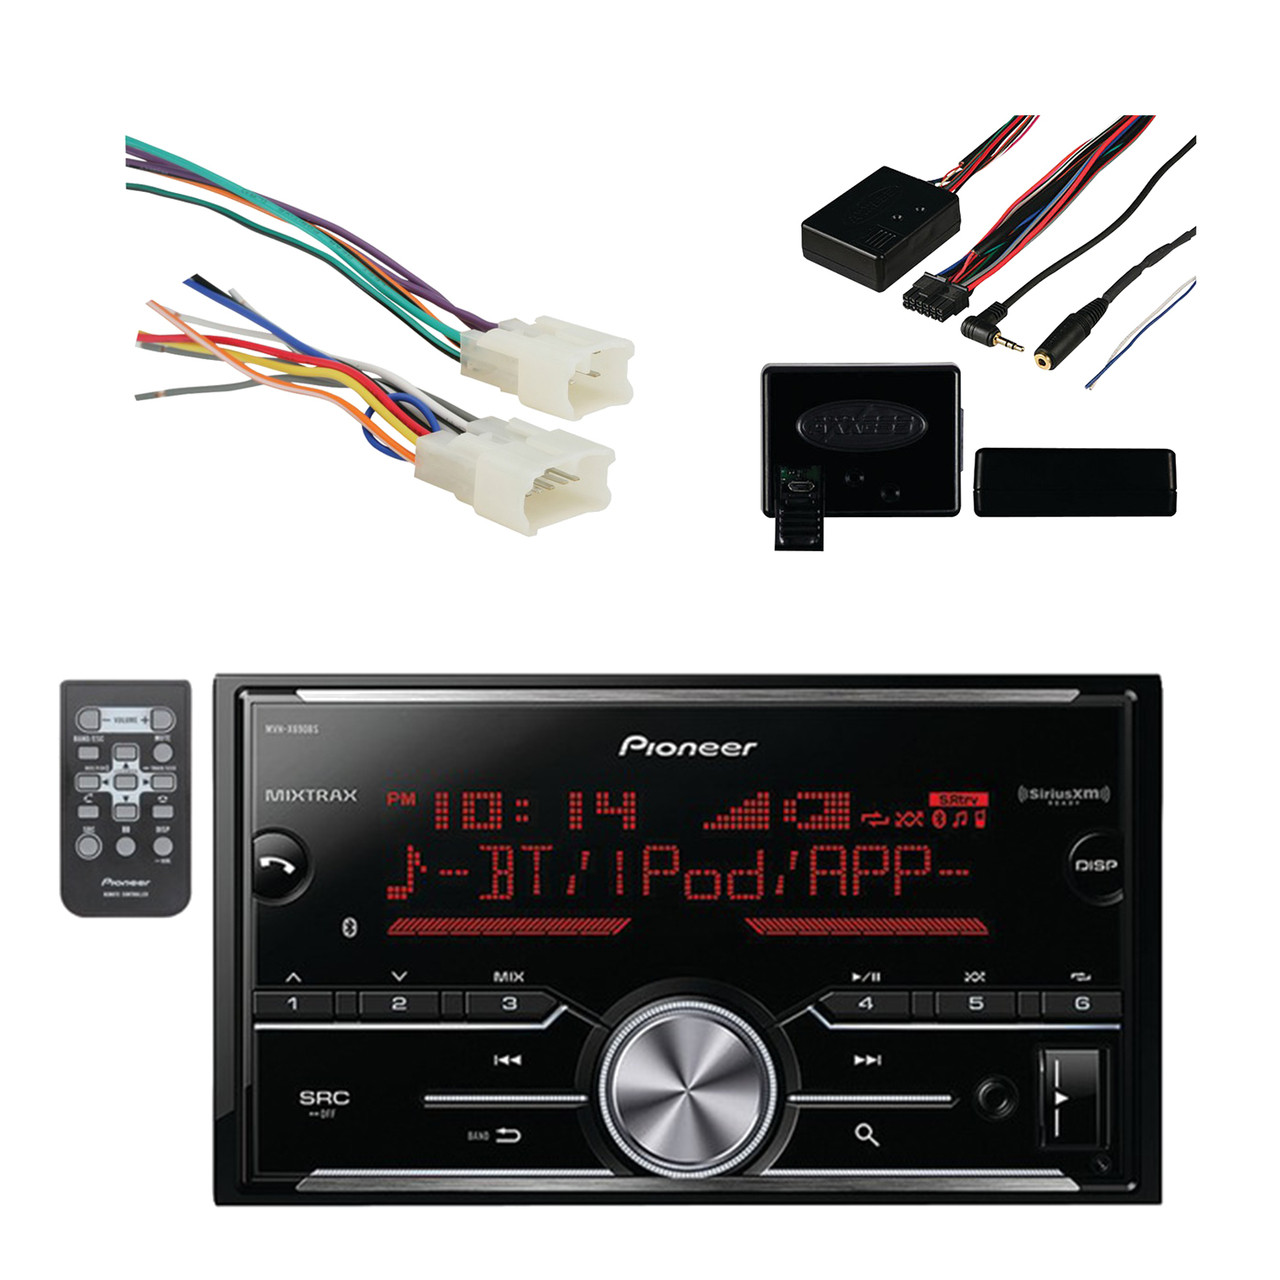 pioneer vehicle digital media double din receiver with bluetooth black with metra radio wiring harness for toyota 87 up power 4 speaker and metra axxess  [ 1280 x 1280 Pixel ]